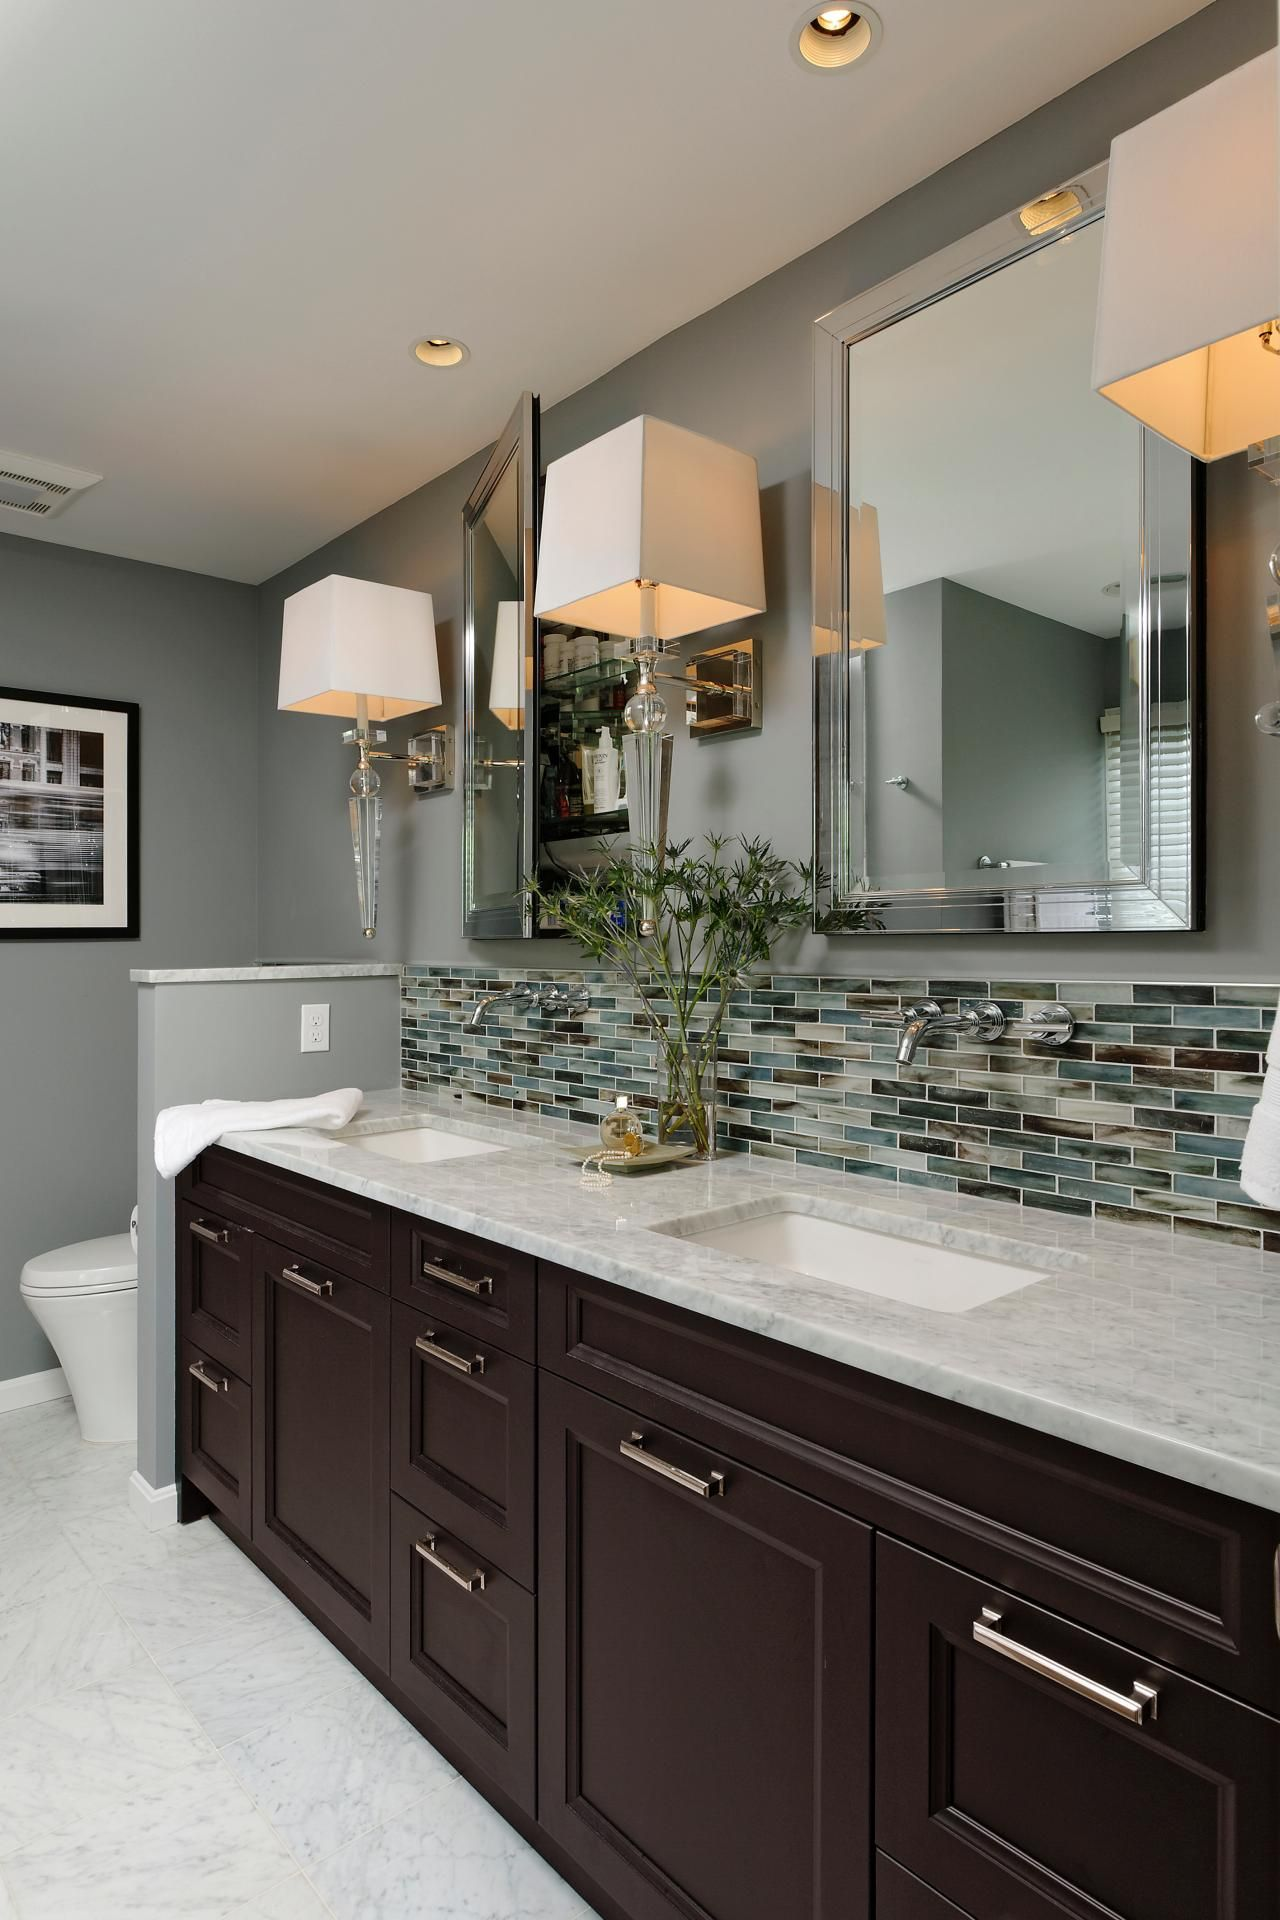 Photo Album Gallery This gray contemporary bathroom features a double vanity design with a Carrera marble countertop glass tile backsplash and polished chrome sconces and